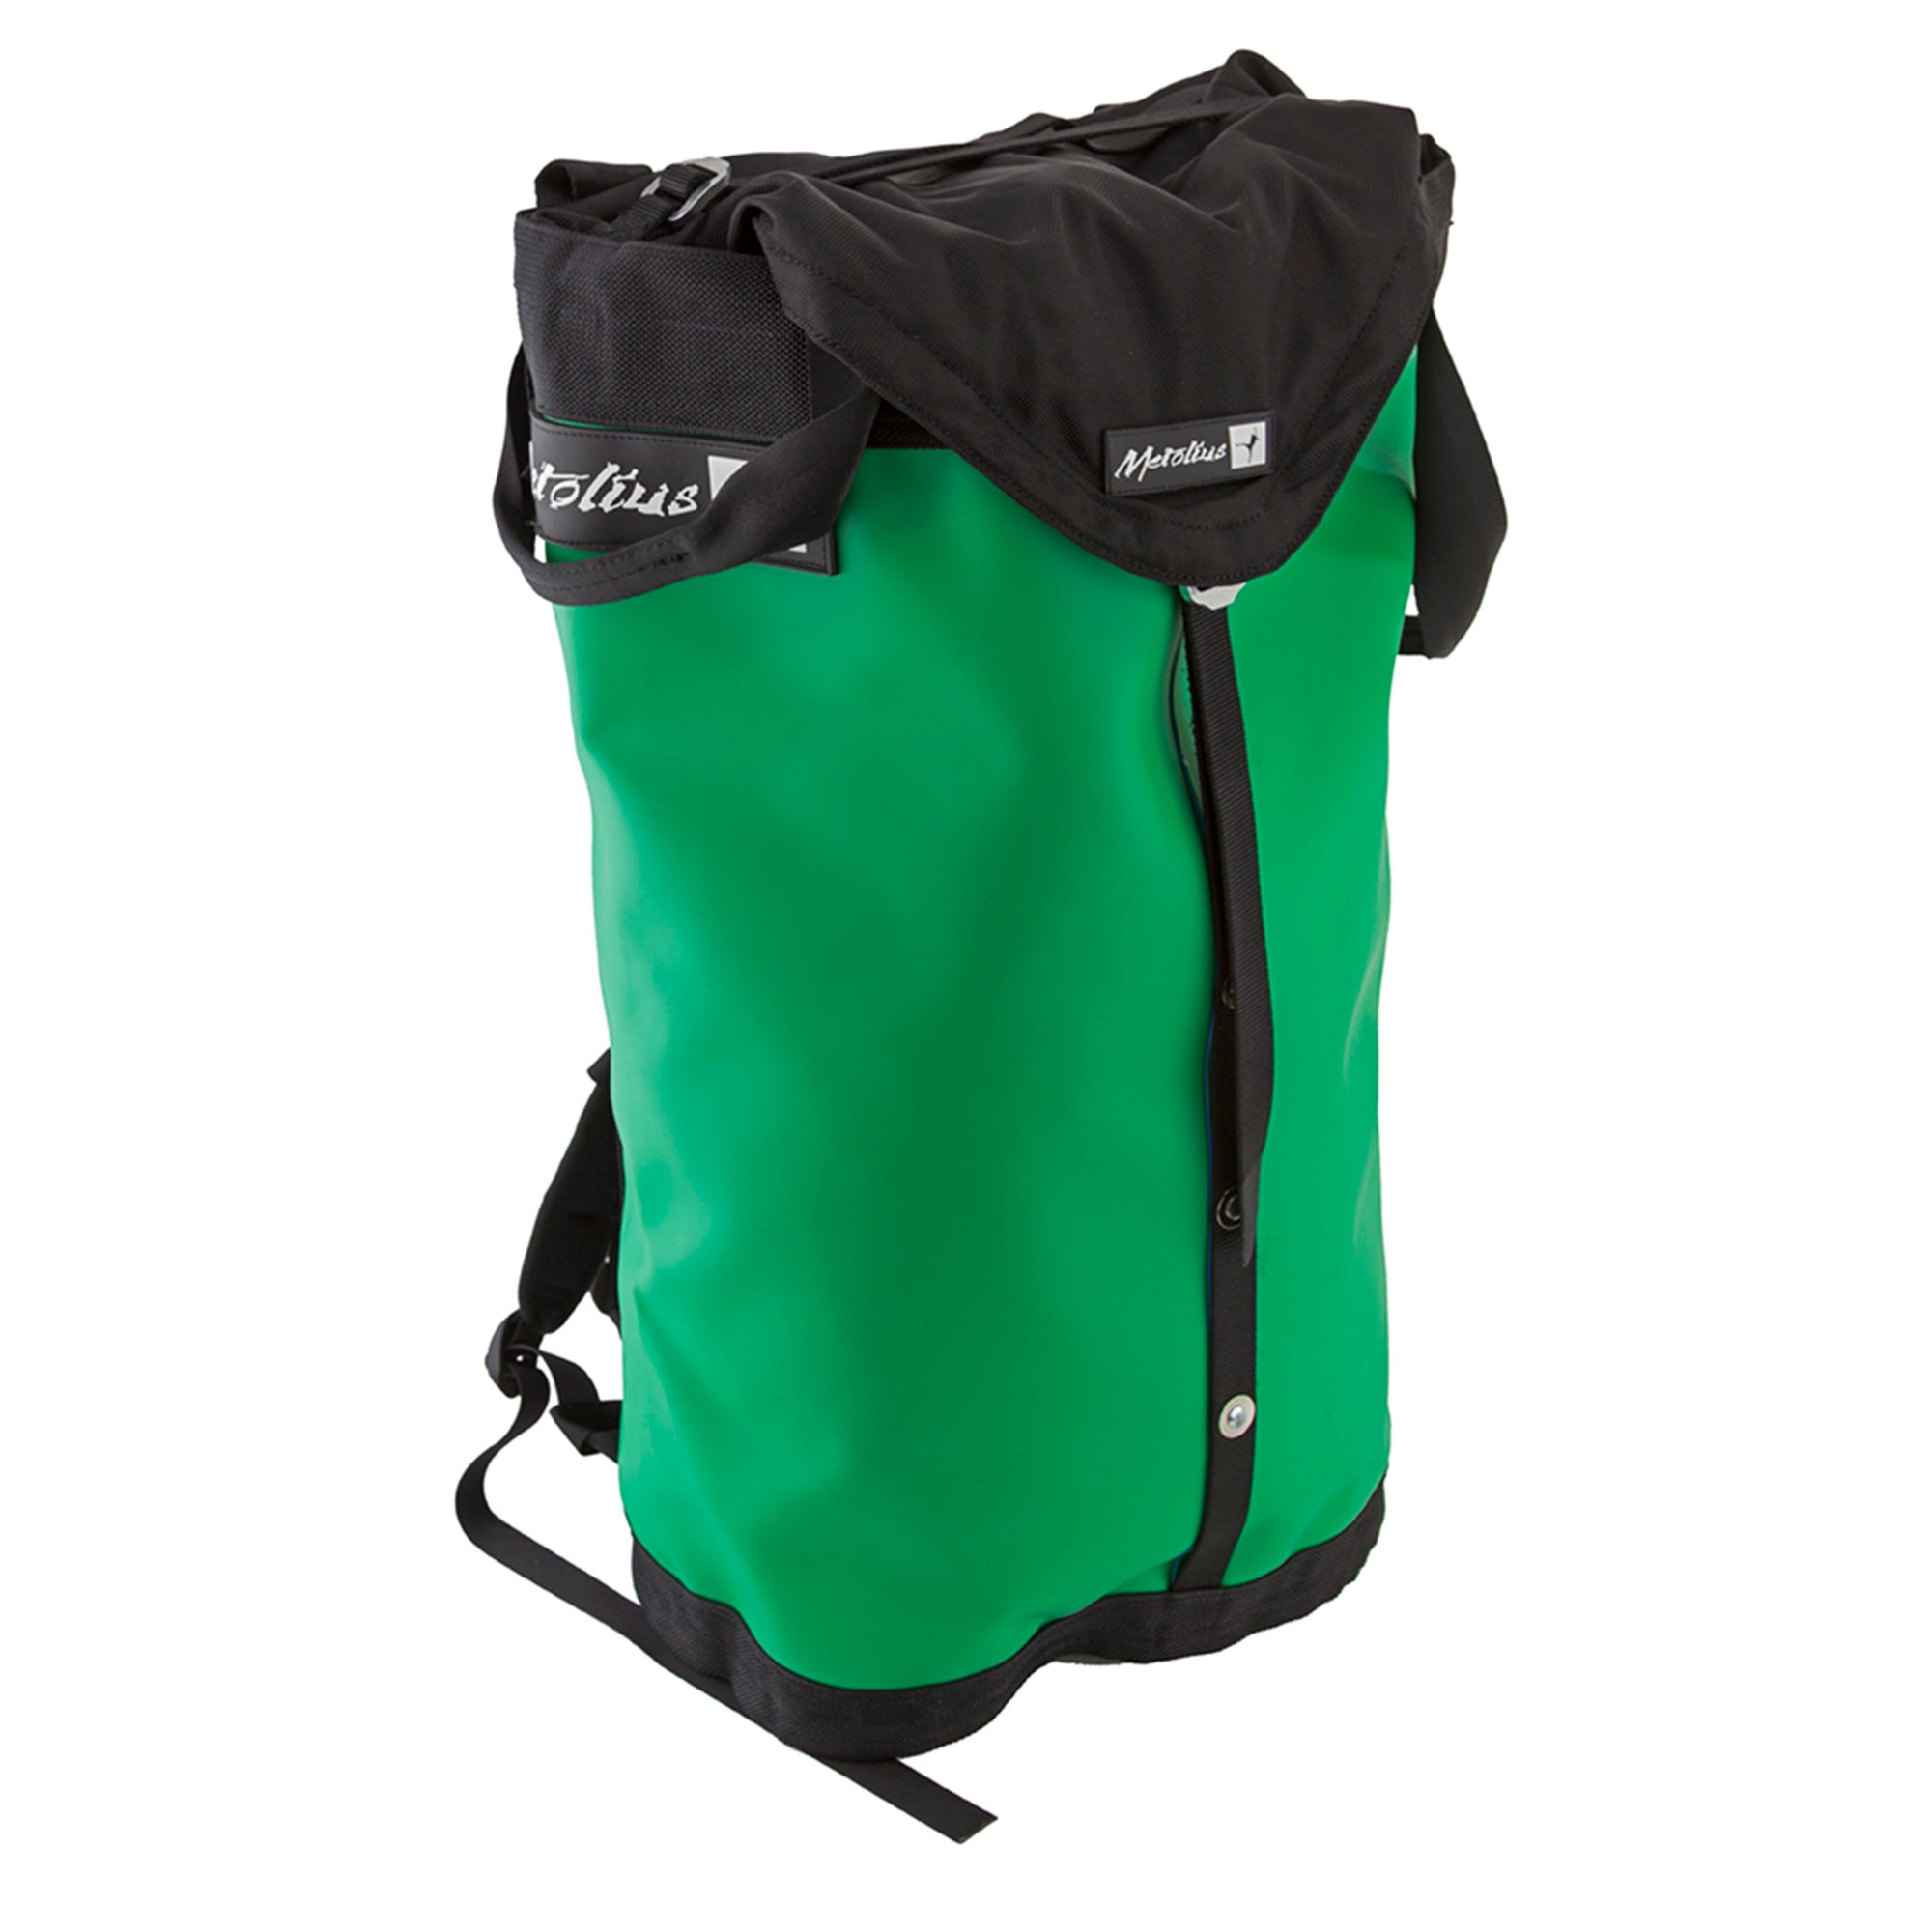 a photo of the metolius quarter dome climbing pack